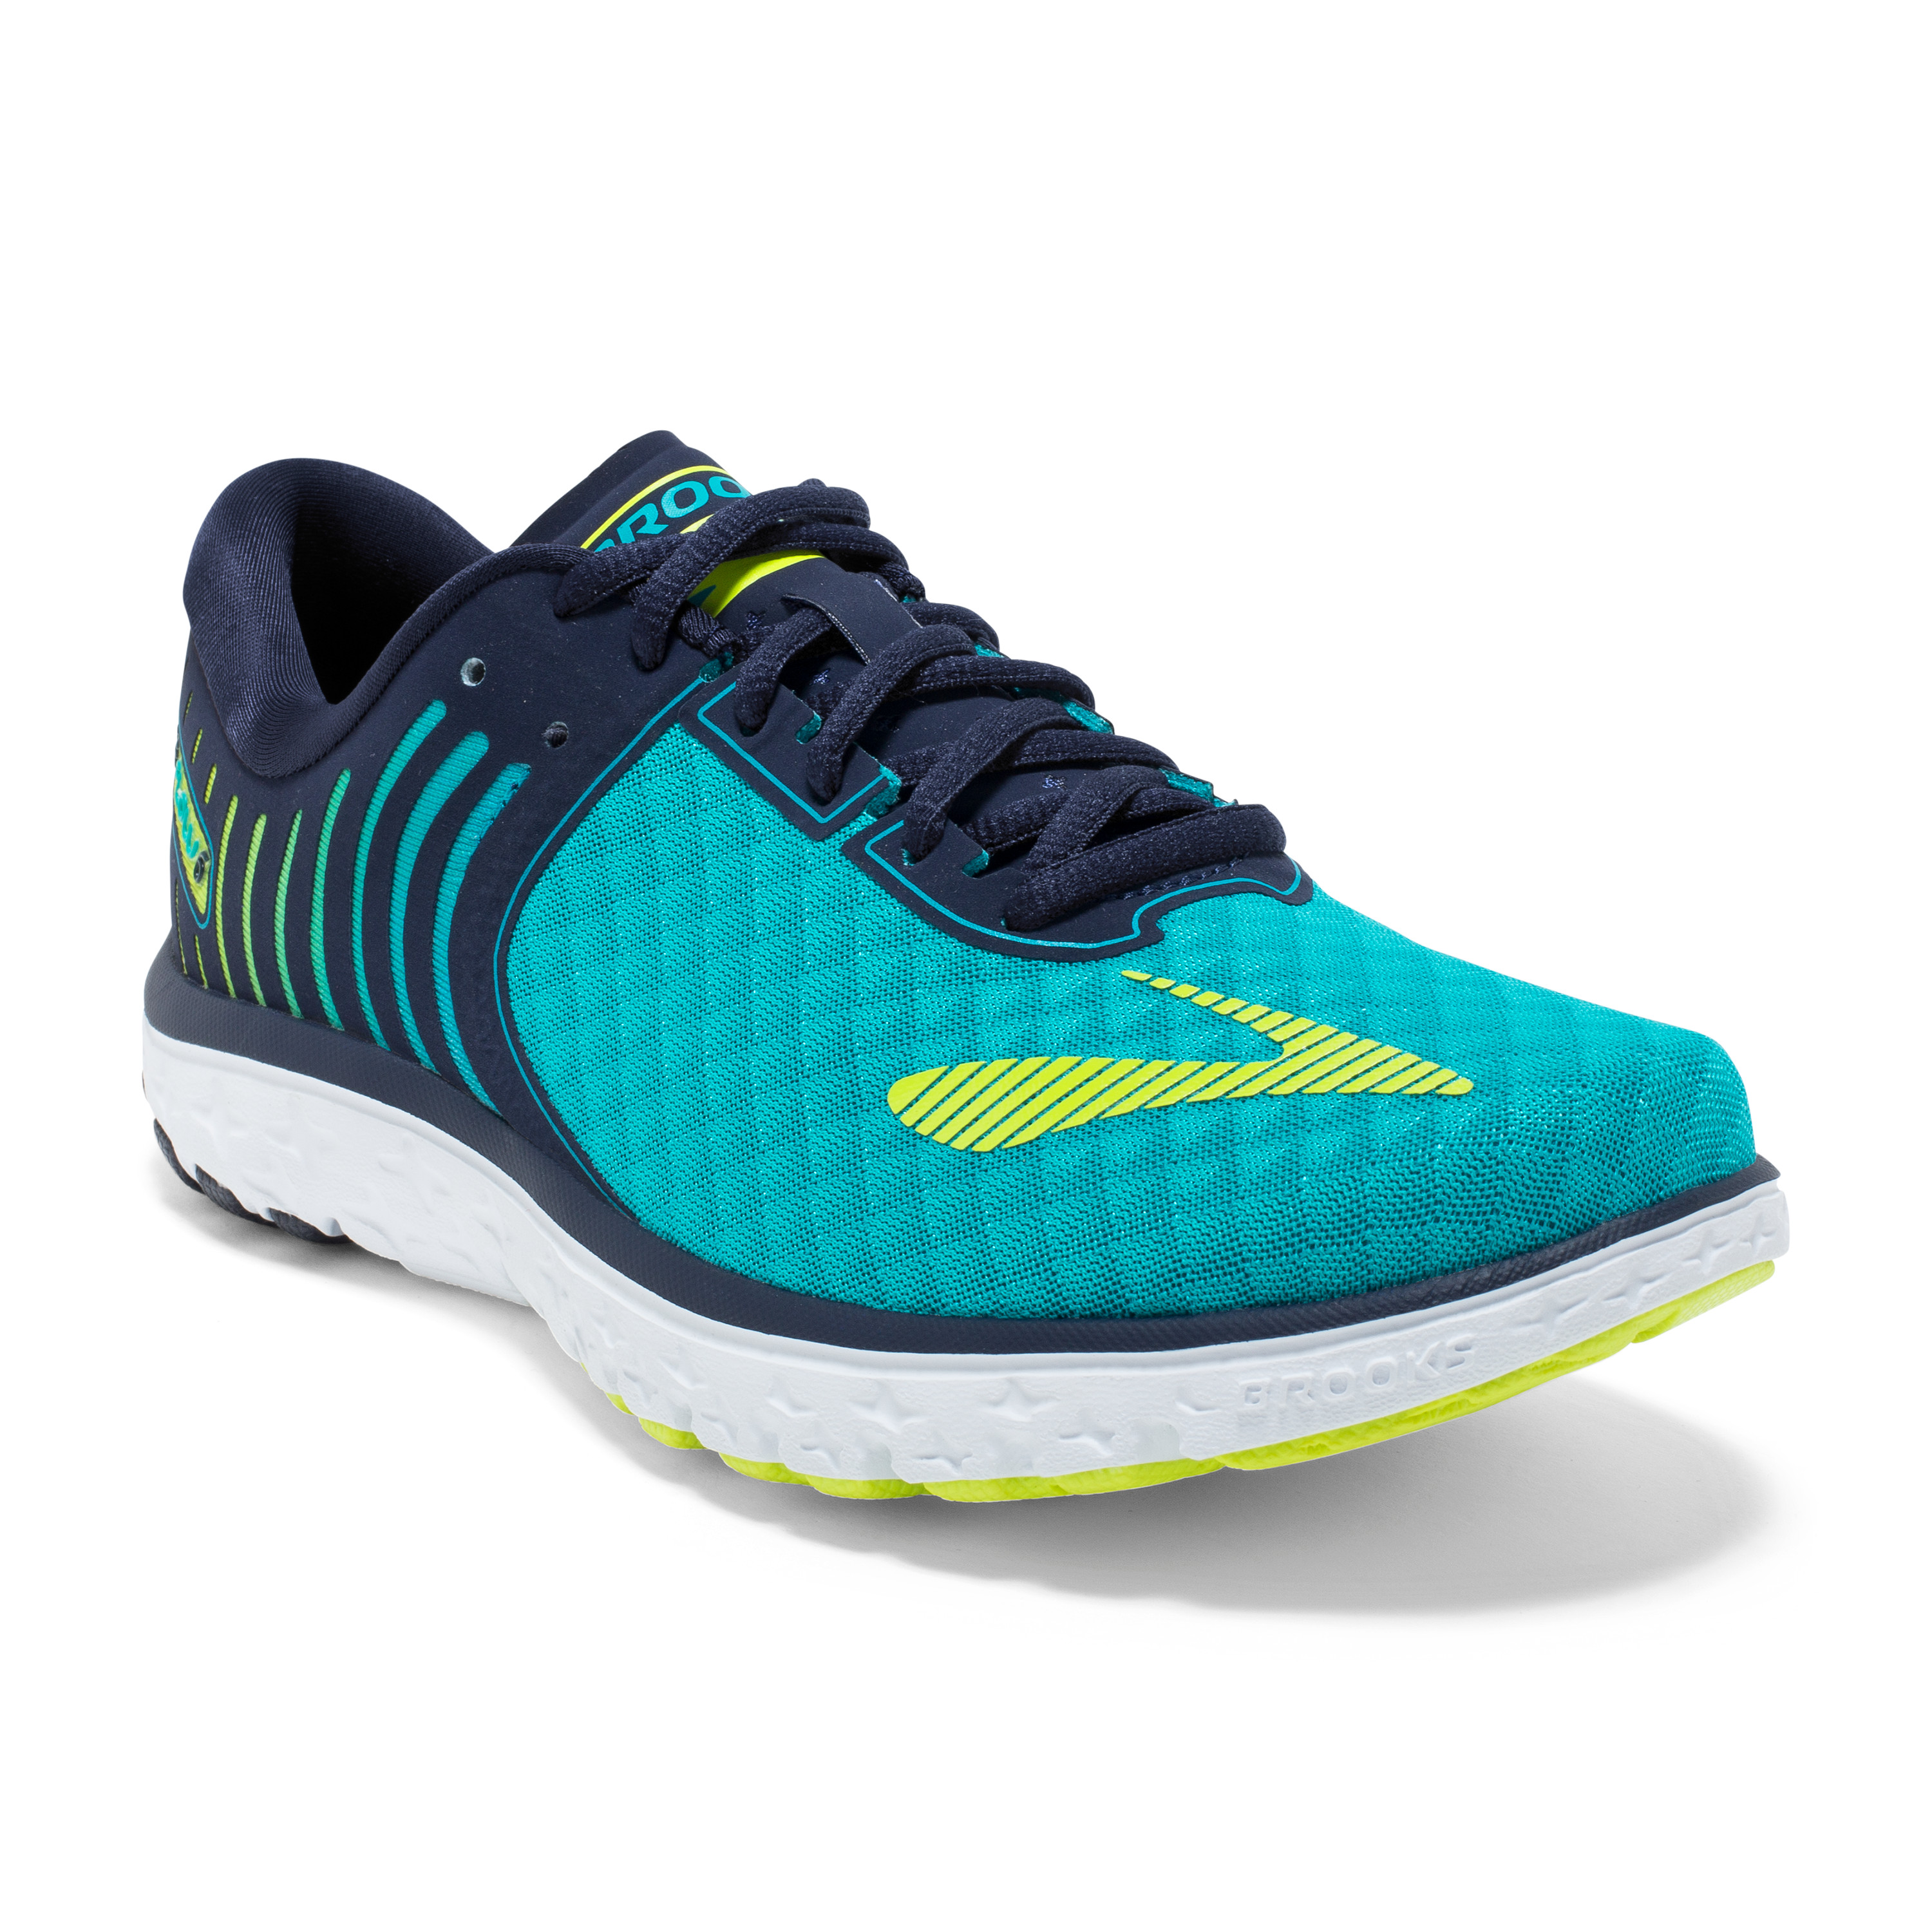 6be39cd6bed WOMEN S PUREFLOW 6 - Brooks Running Shoes SA